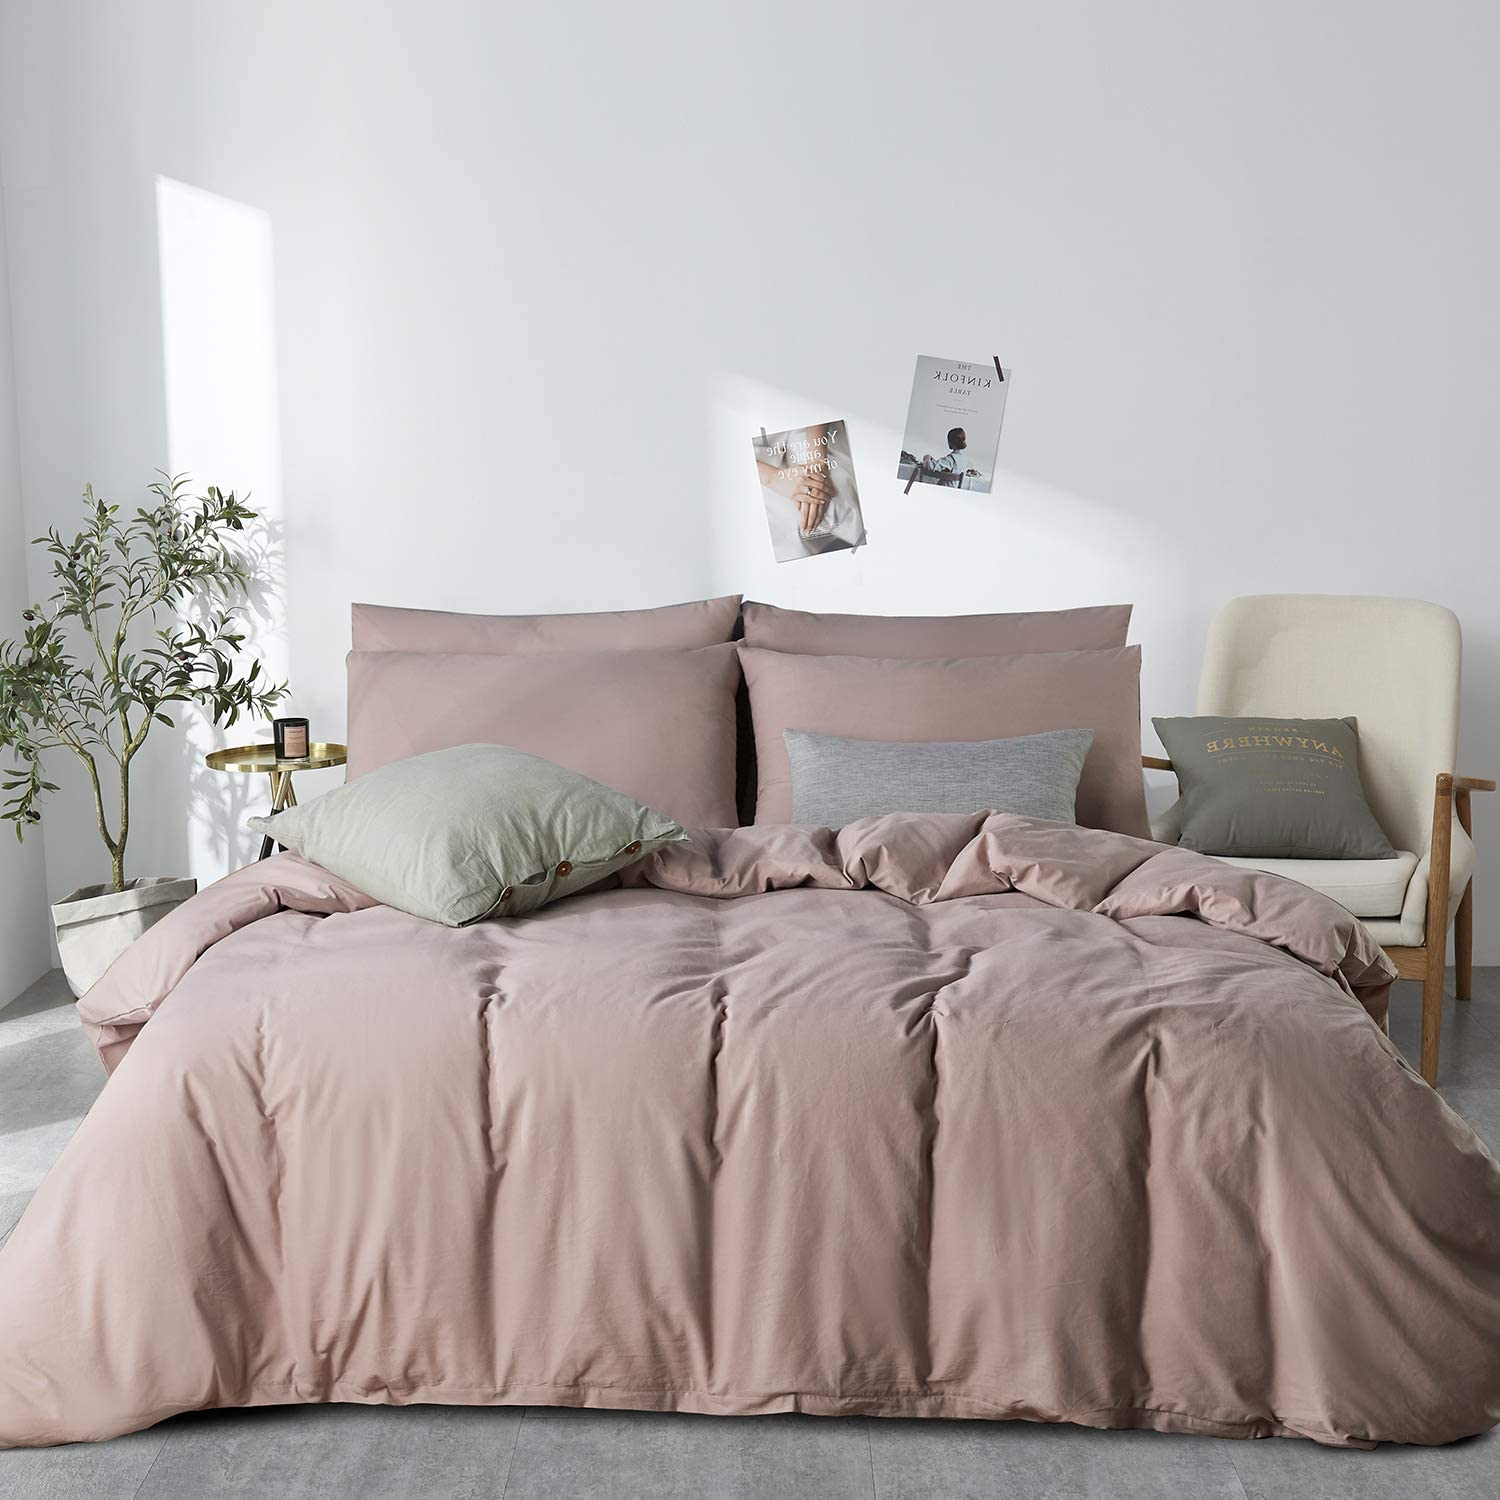 JELLYMONI Pink 100% Washed Cotton Duvet Cover Set, 3 Pieces Ultra Soft Bedding Set with Zipper Closure. Solid Color Pattern Duvet Cover Queen Size(No Comforter)